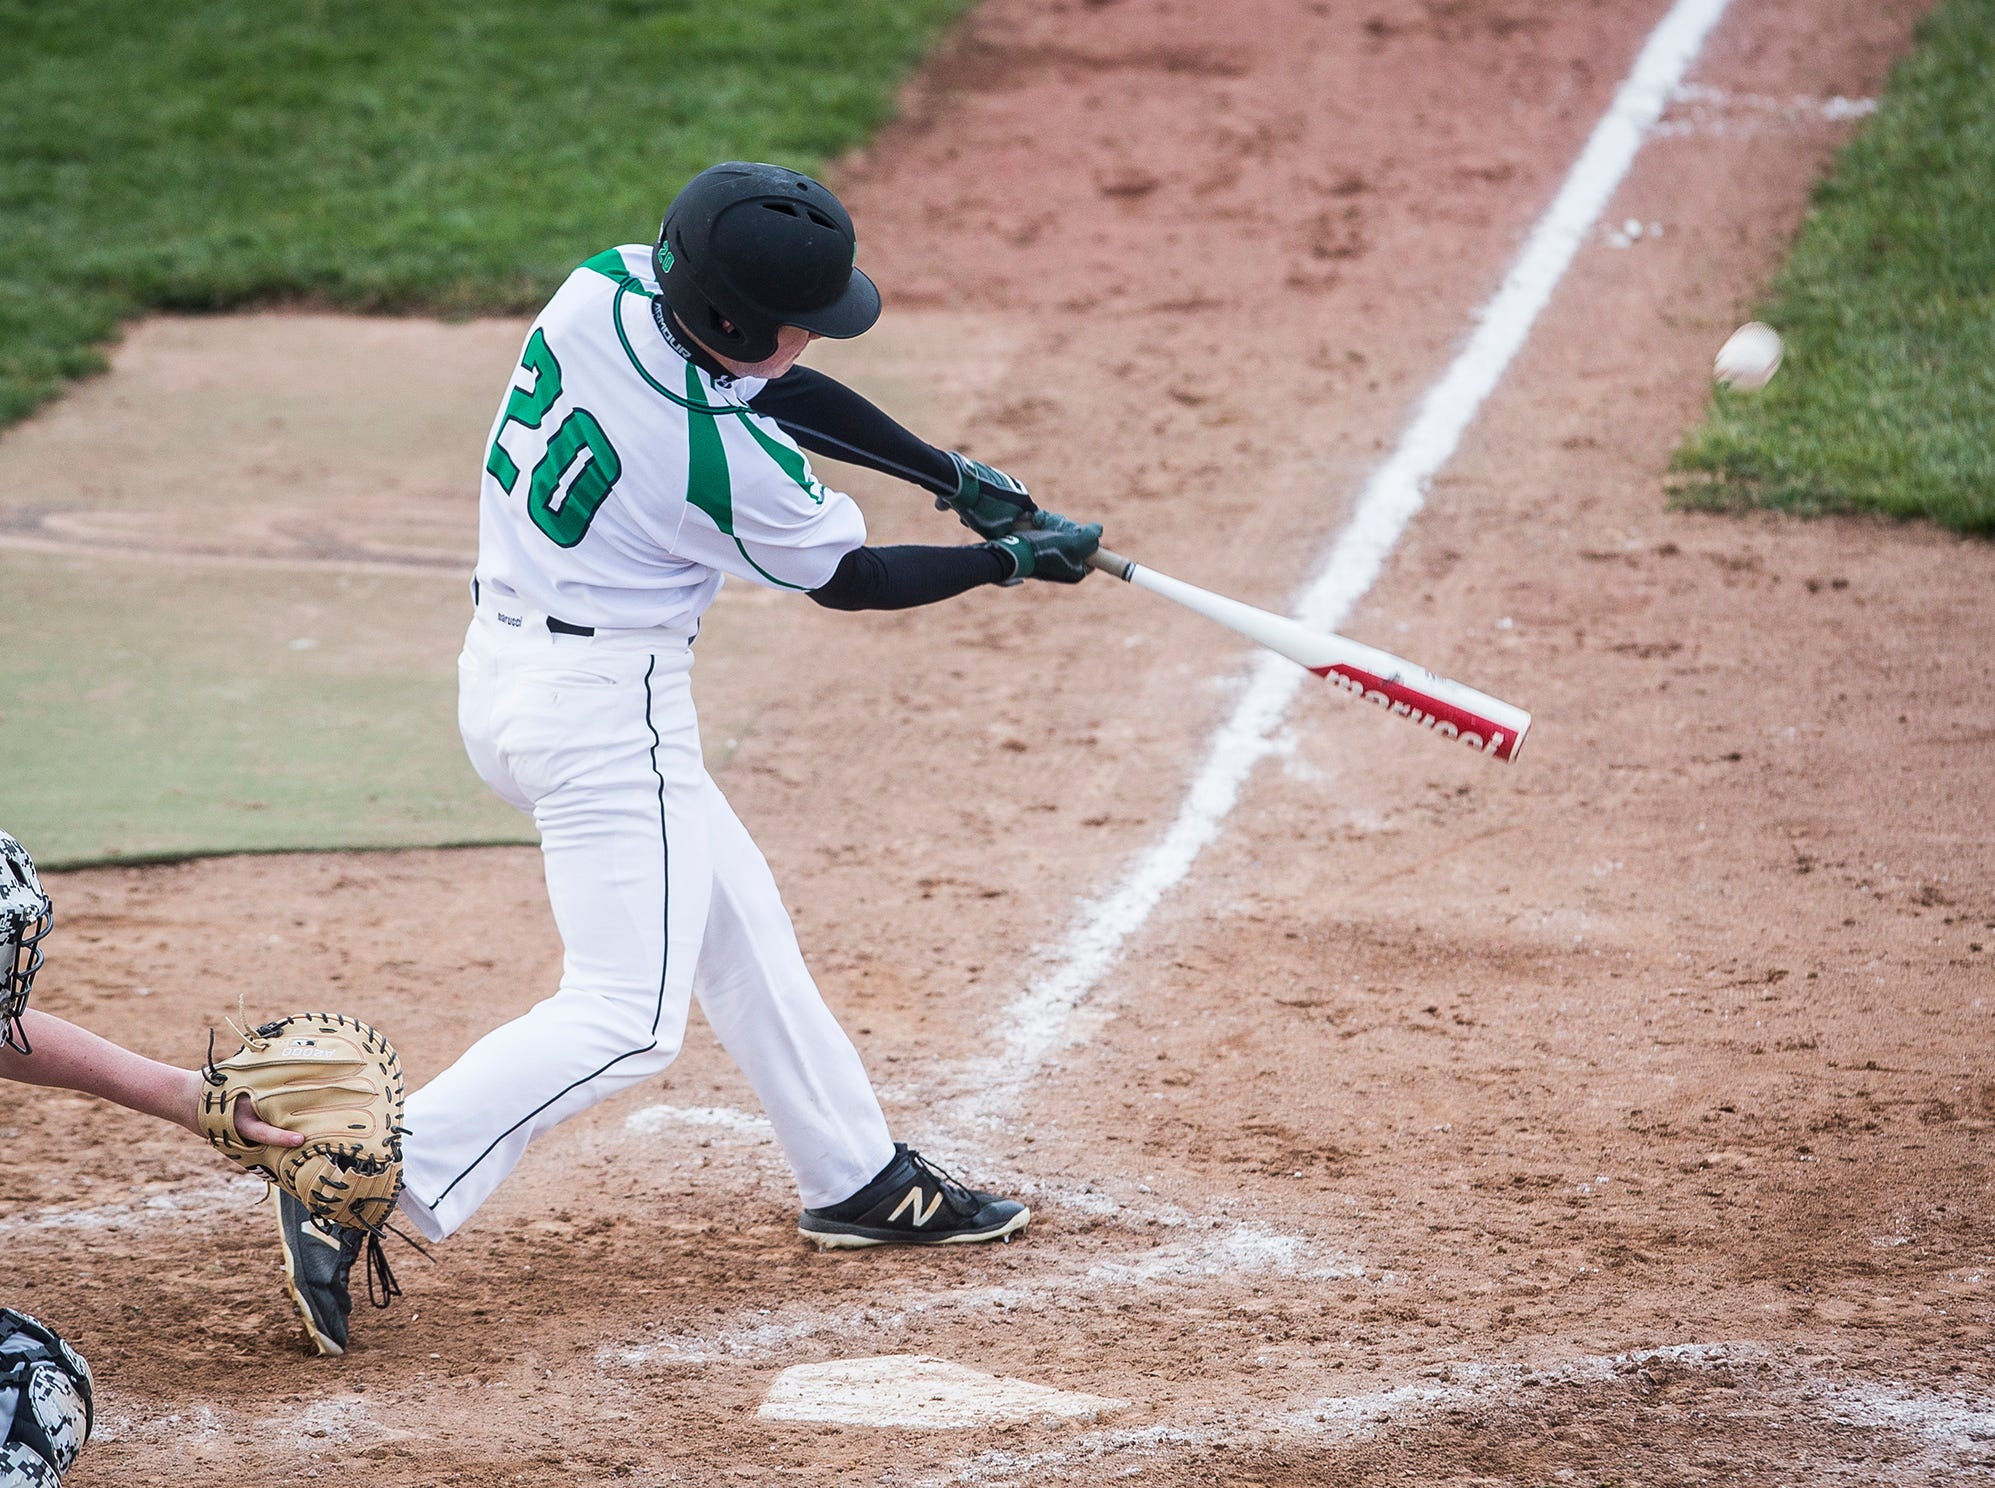 Yorktown defeated Monroe Central 9-2 during their game at Yorktown High School Wednesday, April 10, 2019.